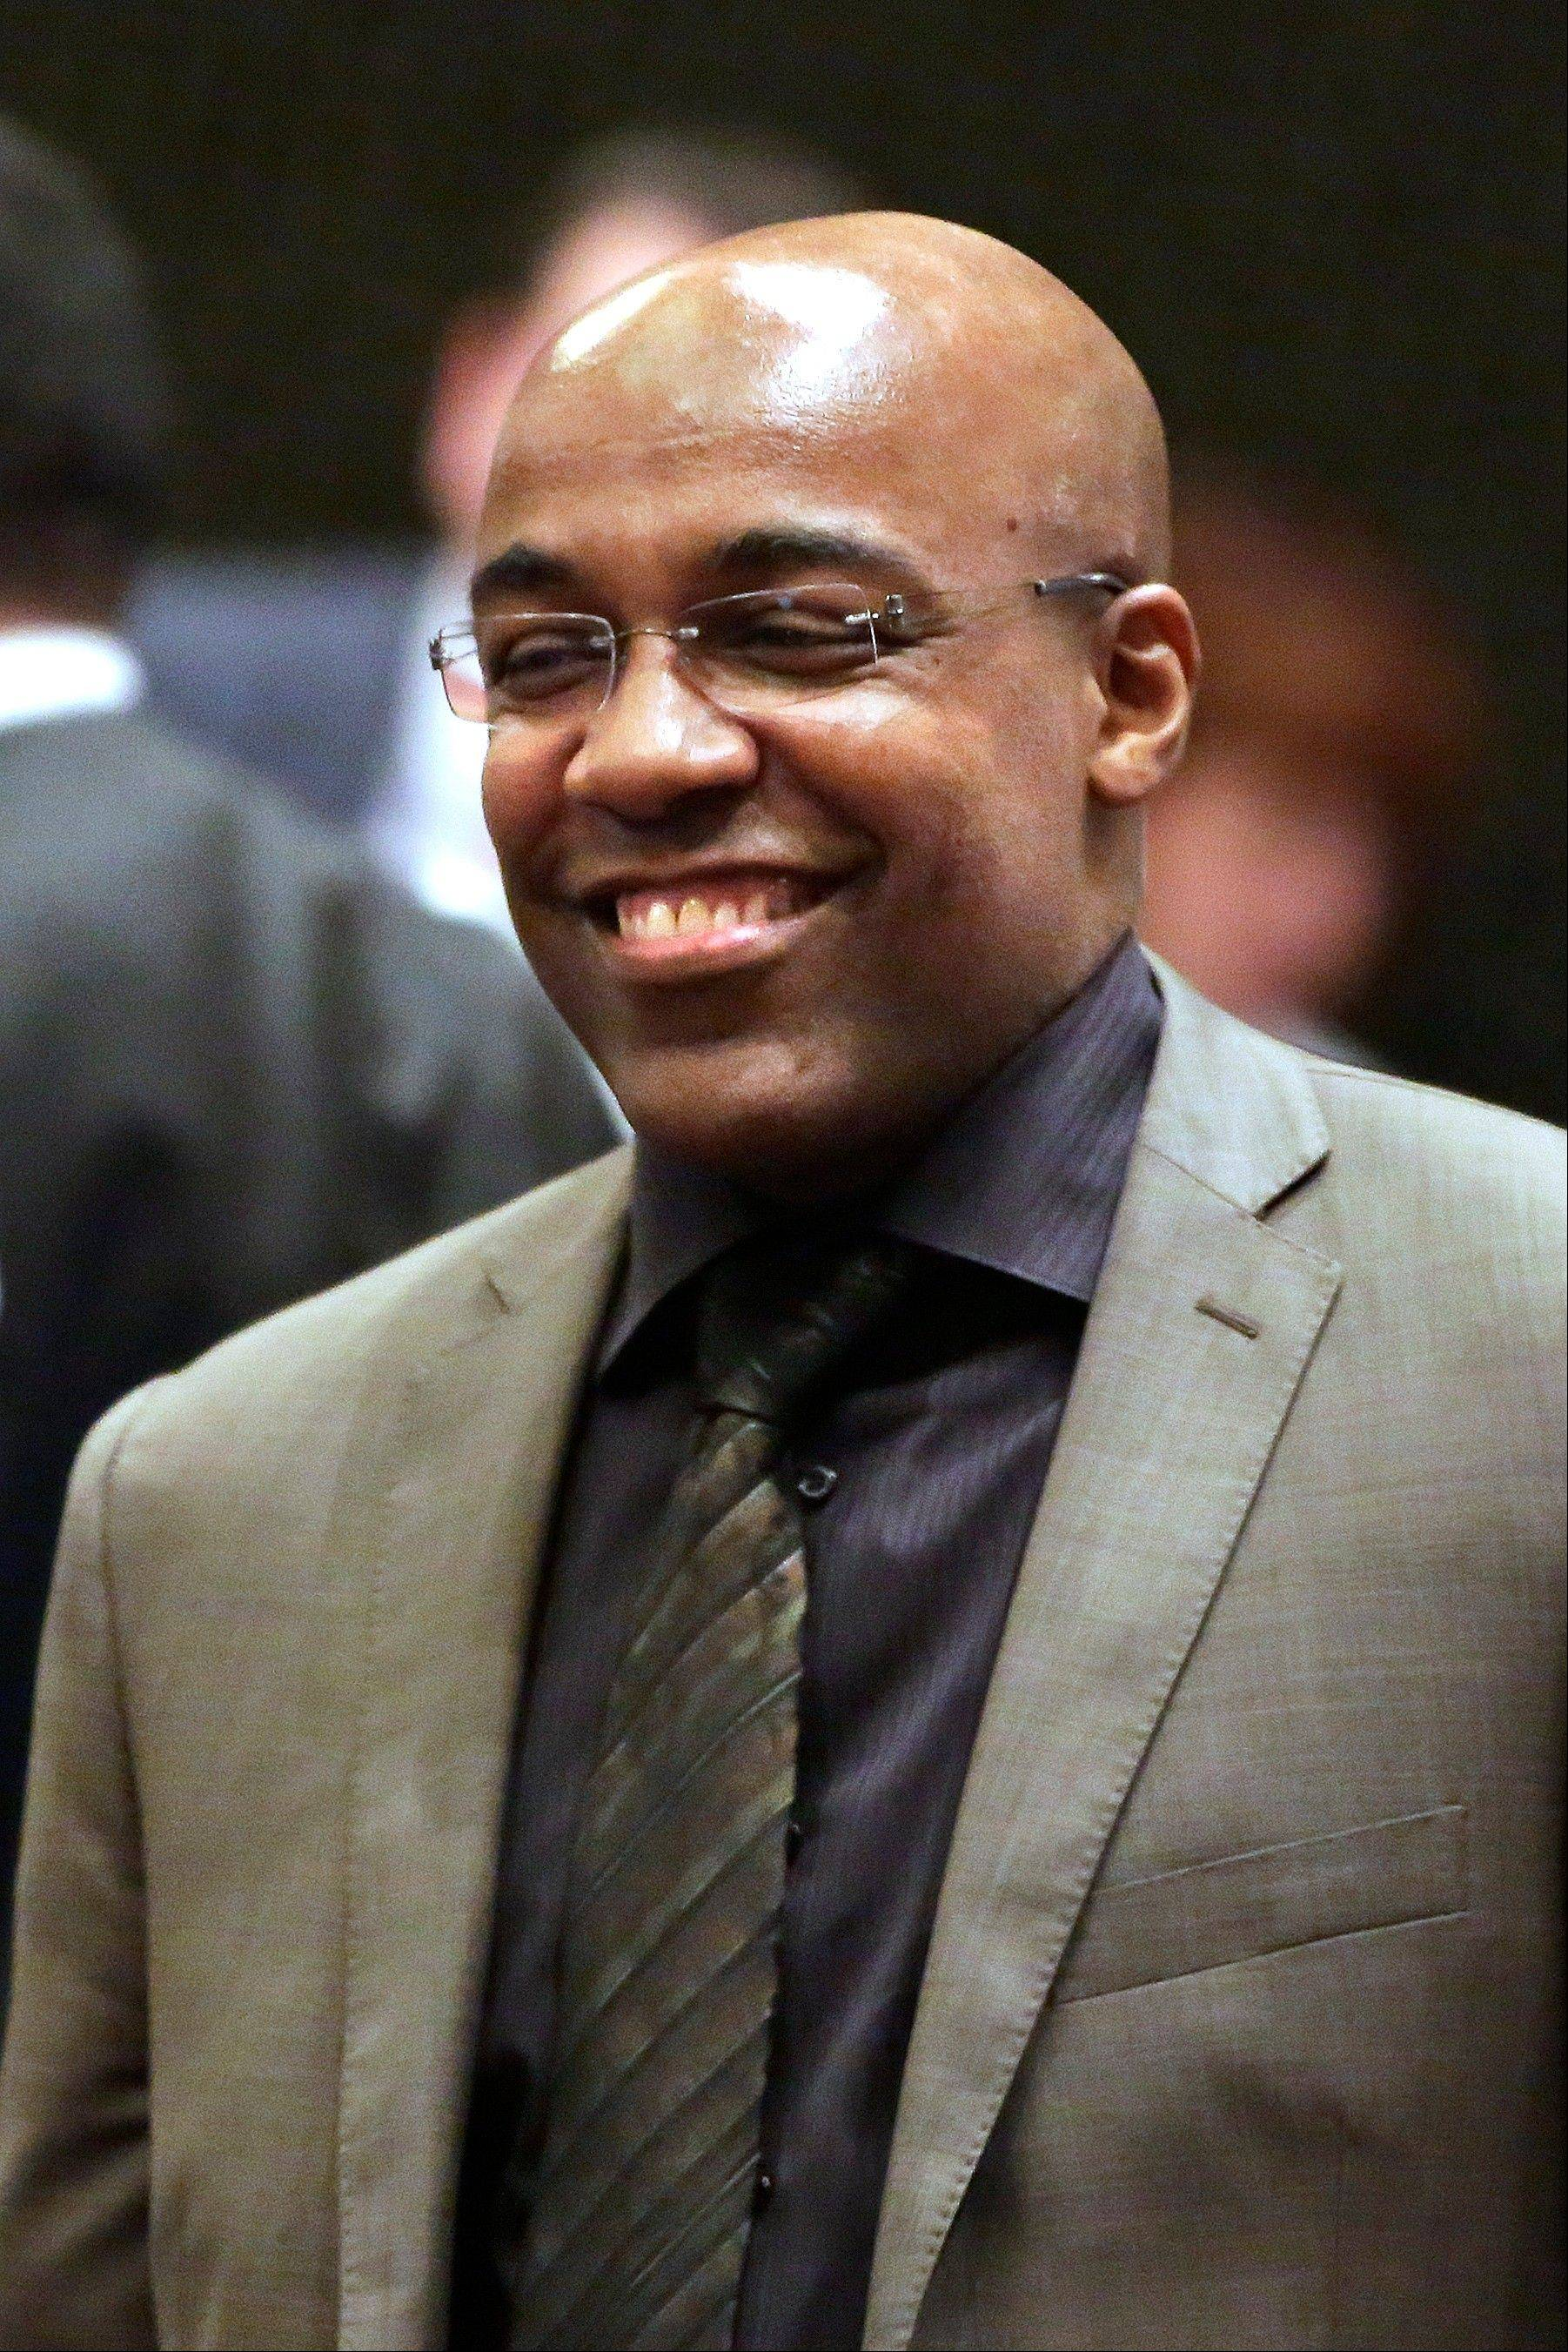 State Sen. Kwame Raoul, a Chicago Democrat